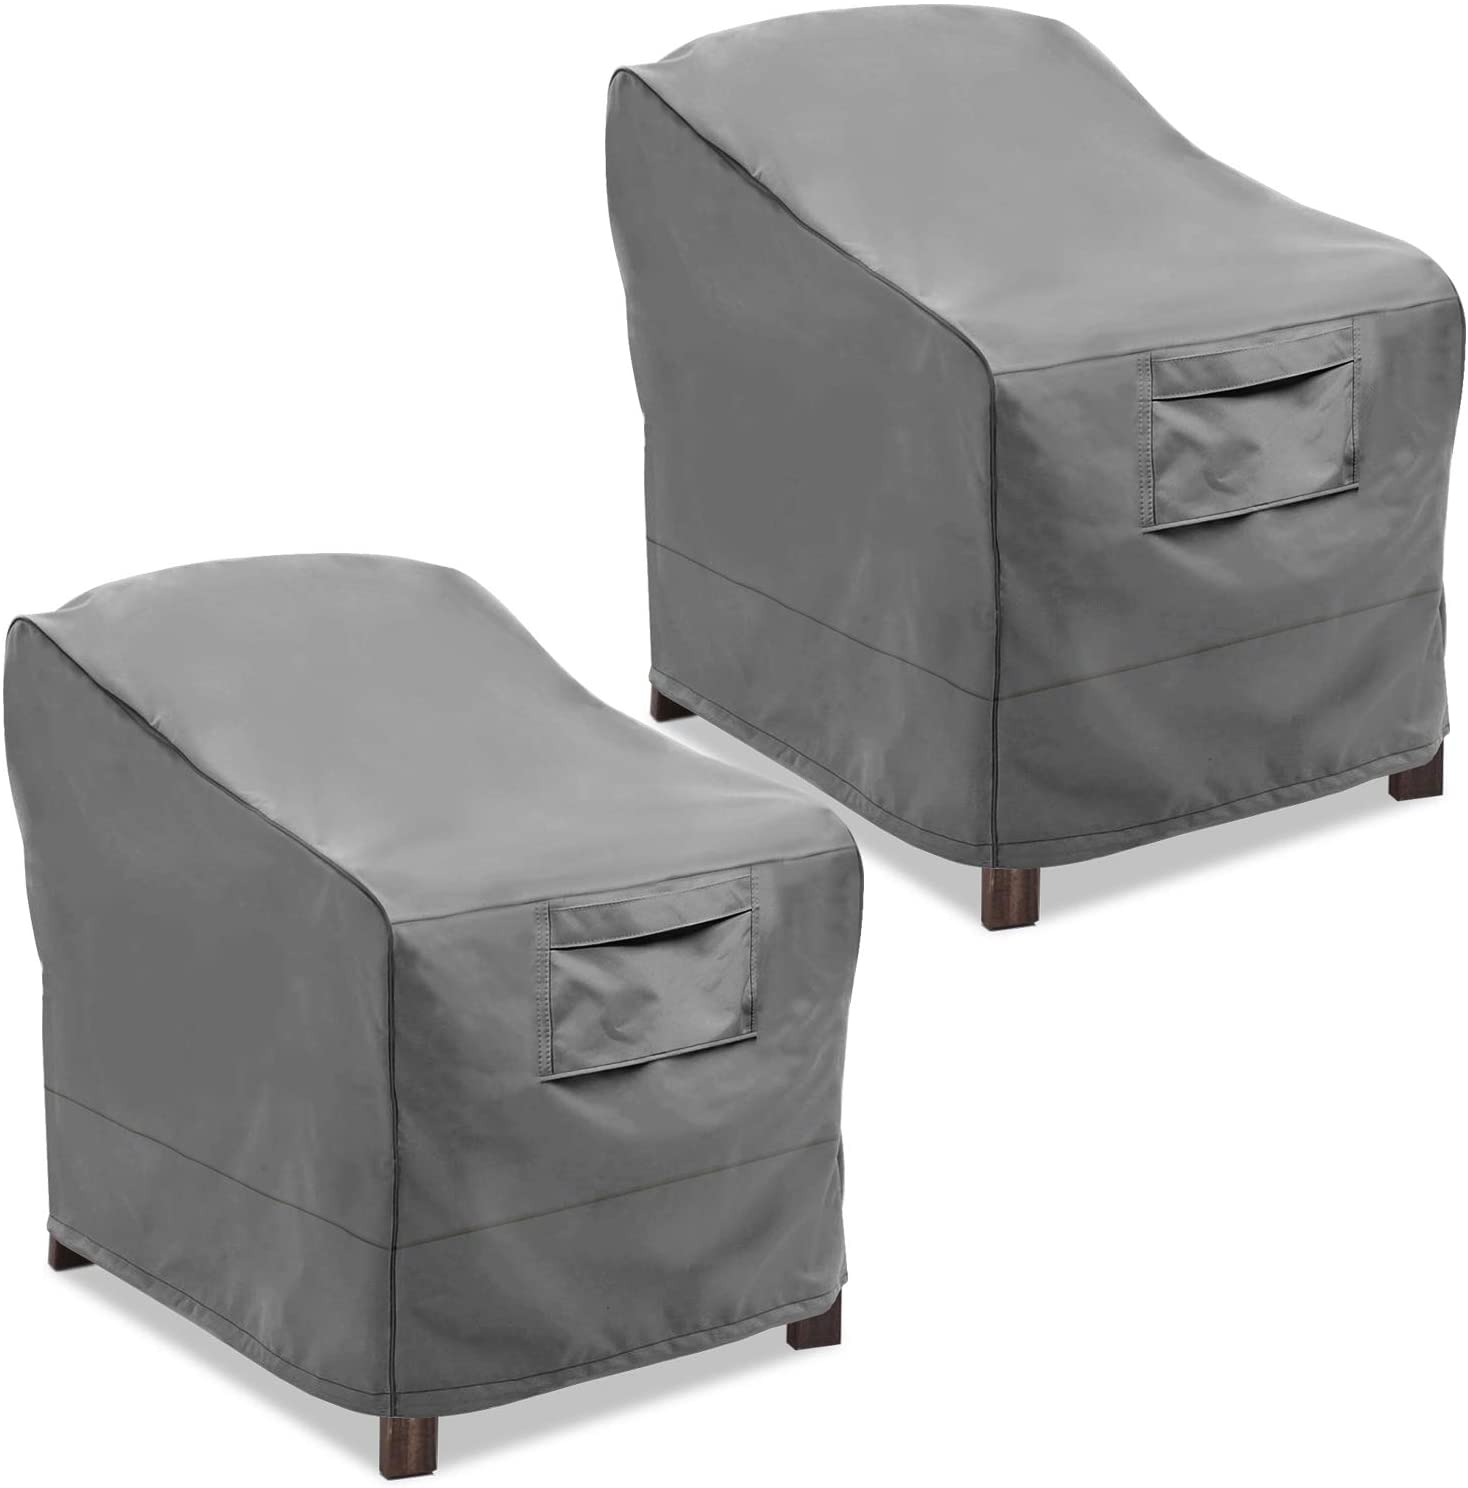 vailge patio chair covers lounge deep seat cover heavy duty and waterproof outdoor lawn patio furniture covers 2 pack medium grey